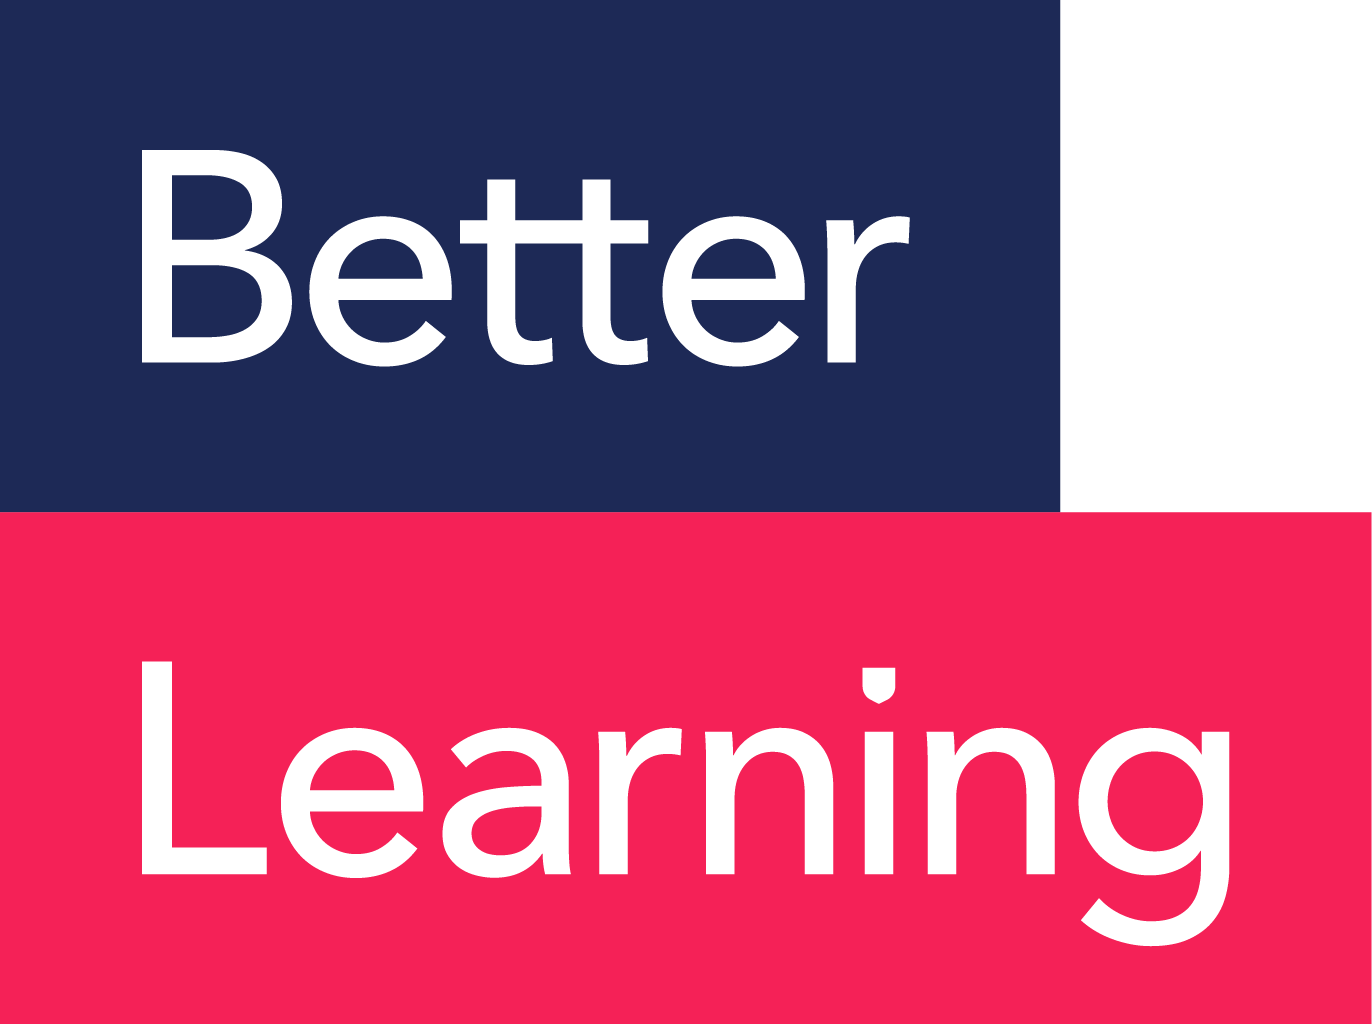 Better Learning